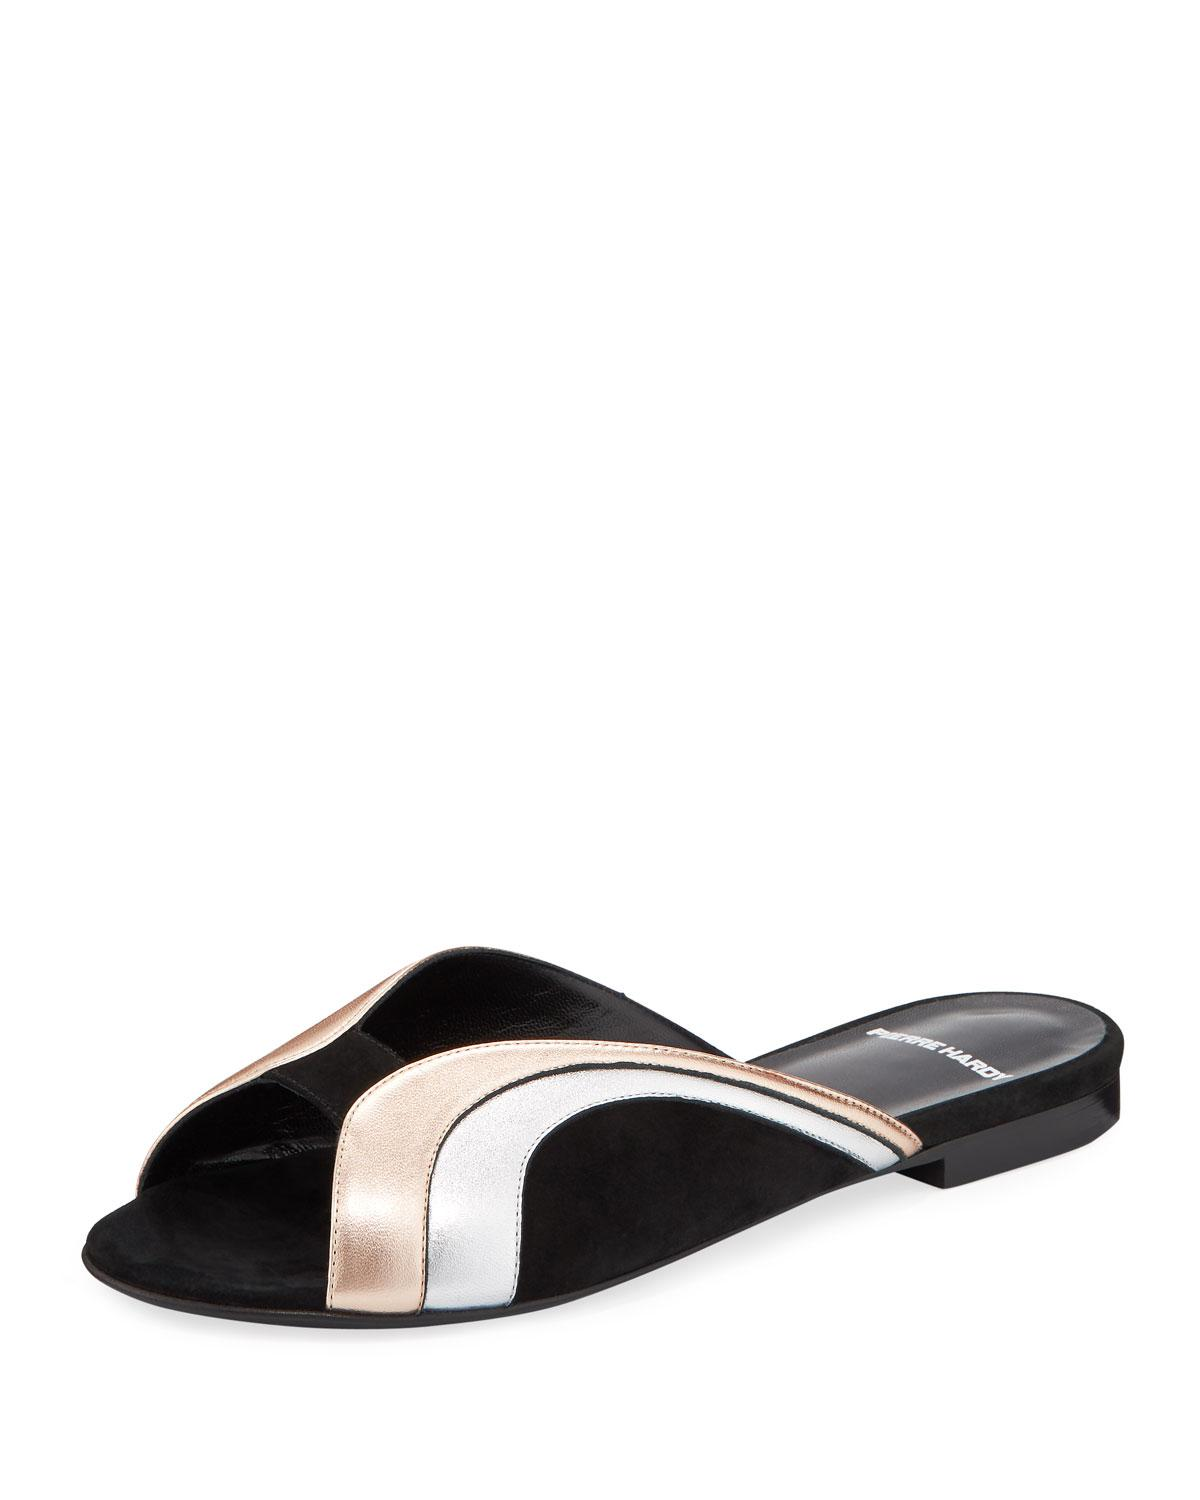 9ce50845368381 Lyst - Pierre Hardy Rainbow Metallic Leather Slide Sandals in Black